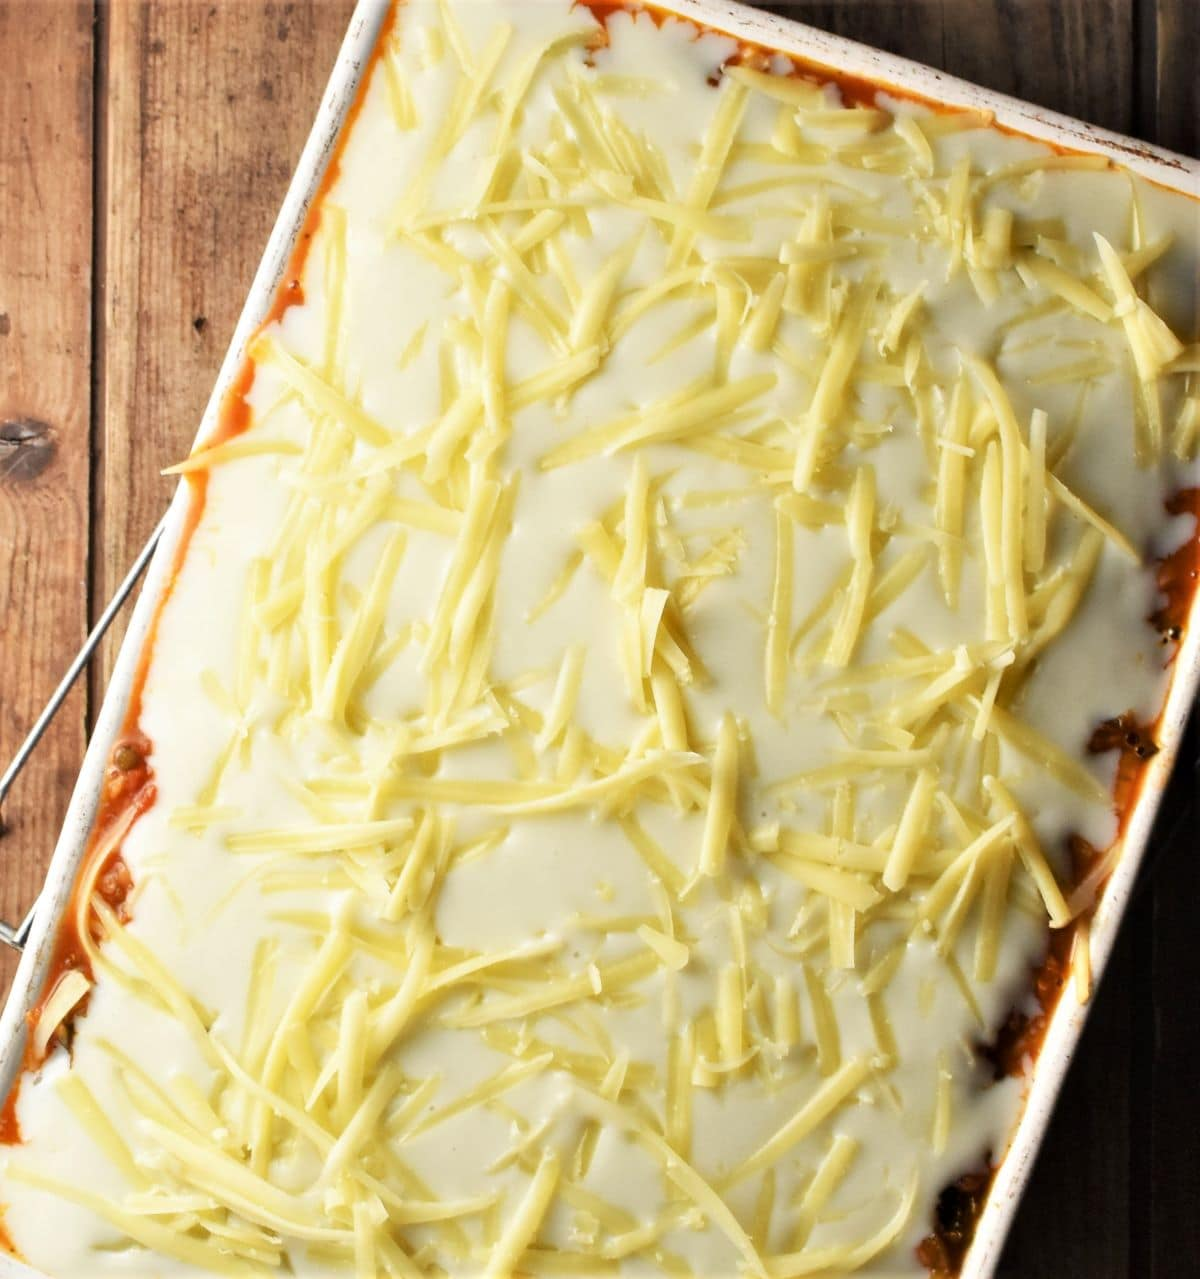 Lasagna with bechamel and grated cheese on top.